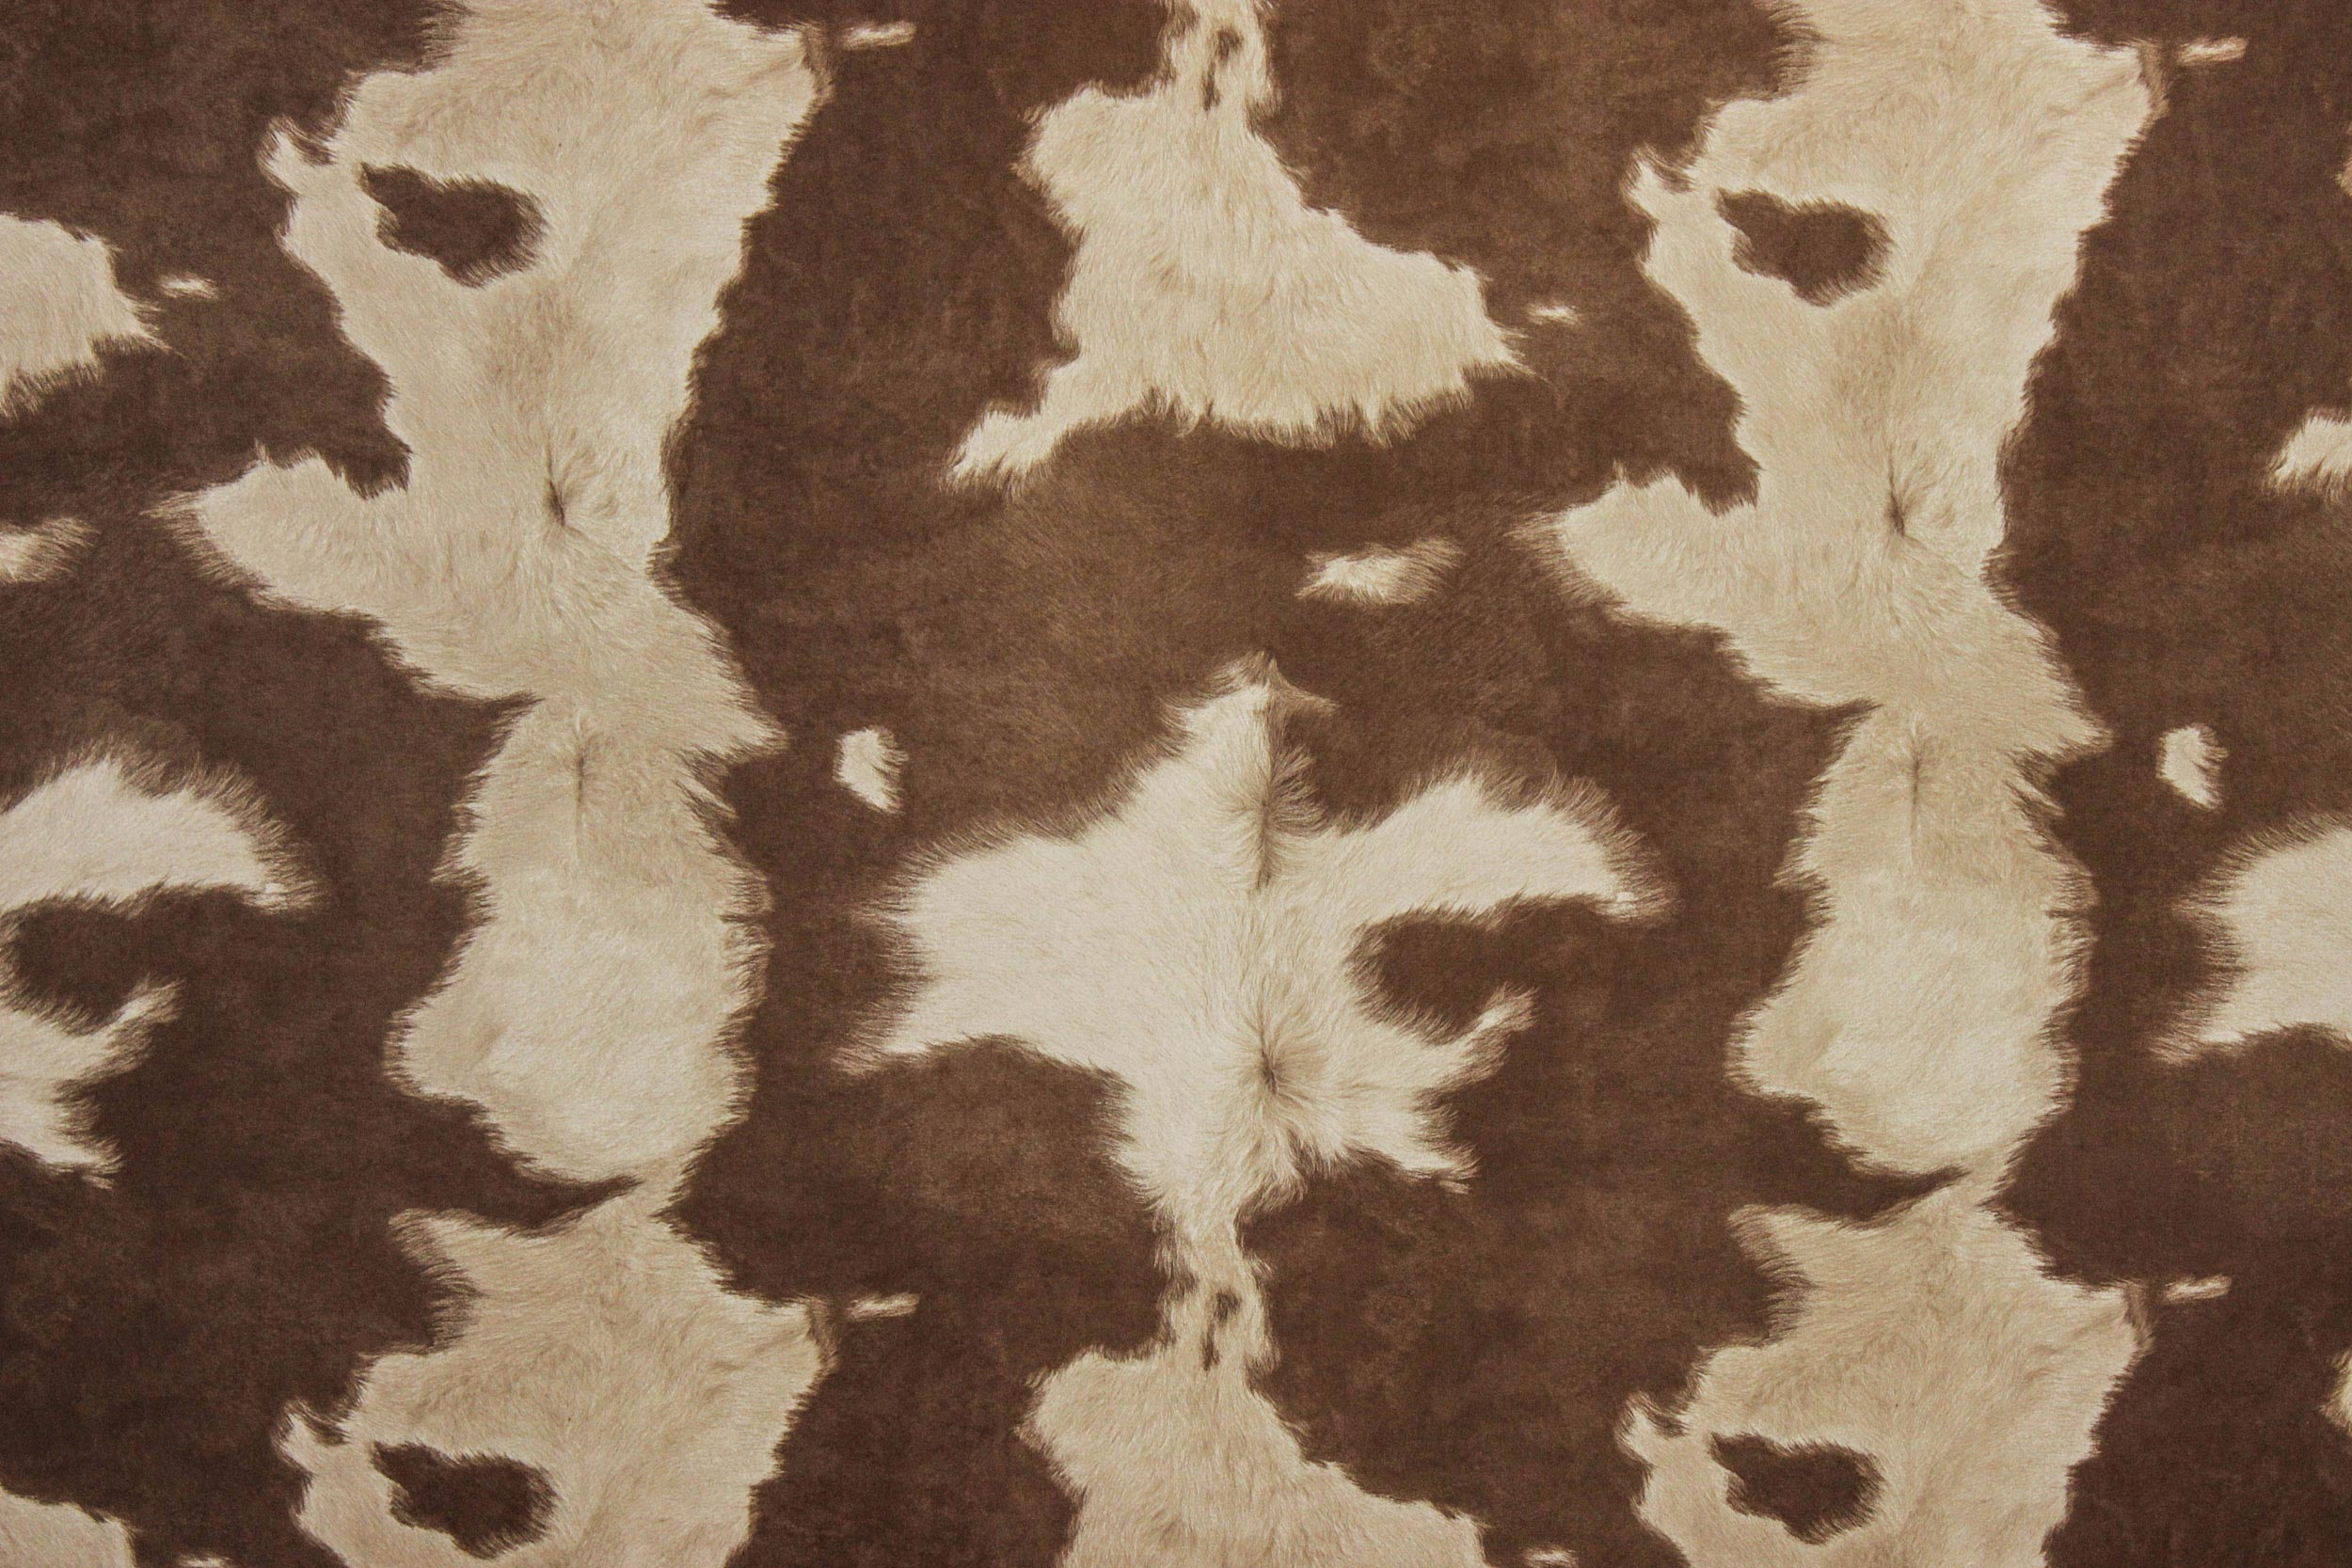 Suede Cowhide Fabric Brown White The Fabric Mill